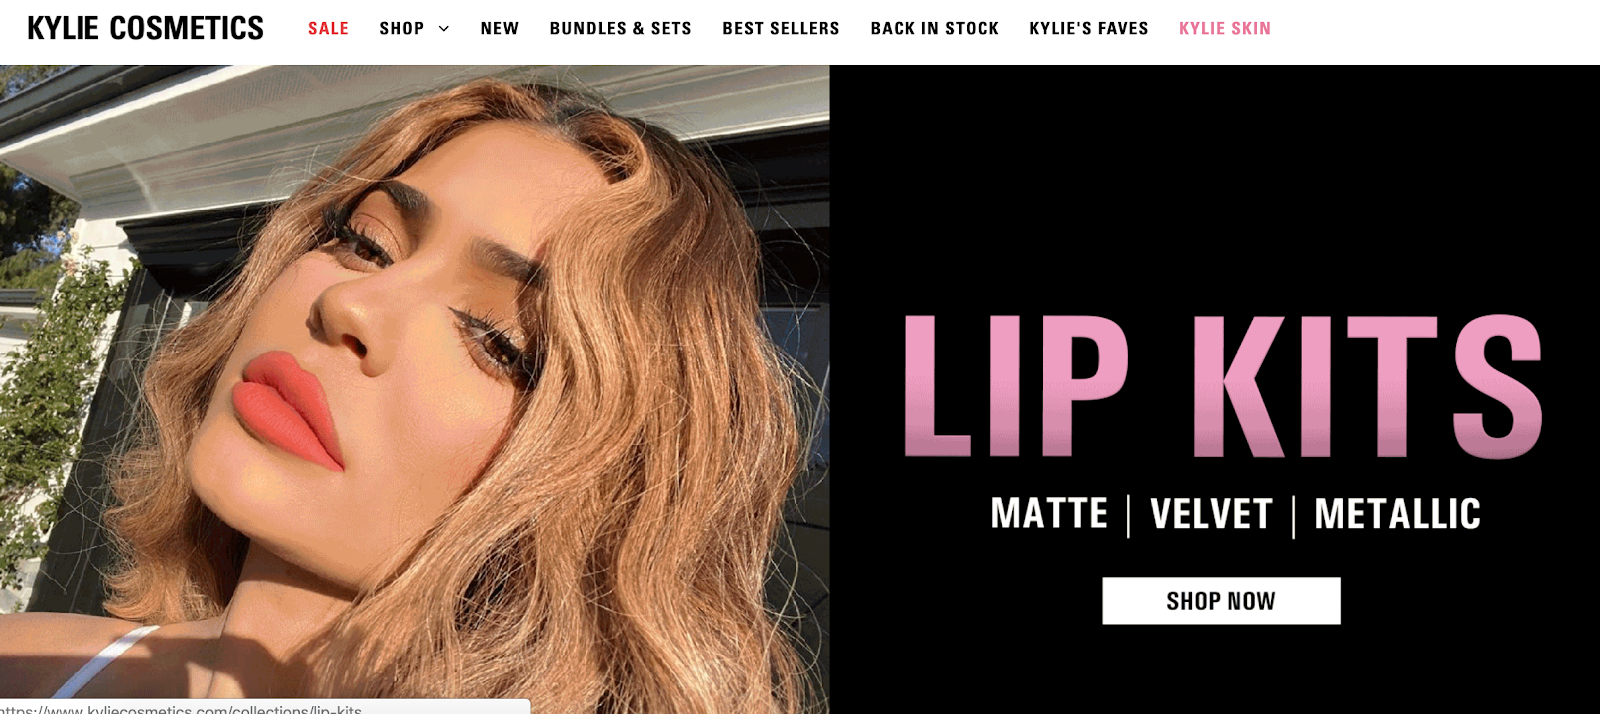 Kylie Cosmetics homepage with Kylie Jenner modeling lipstick